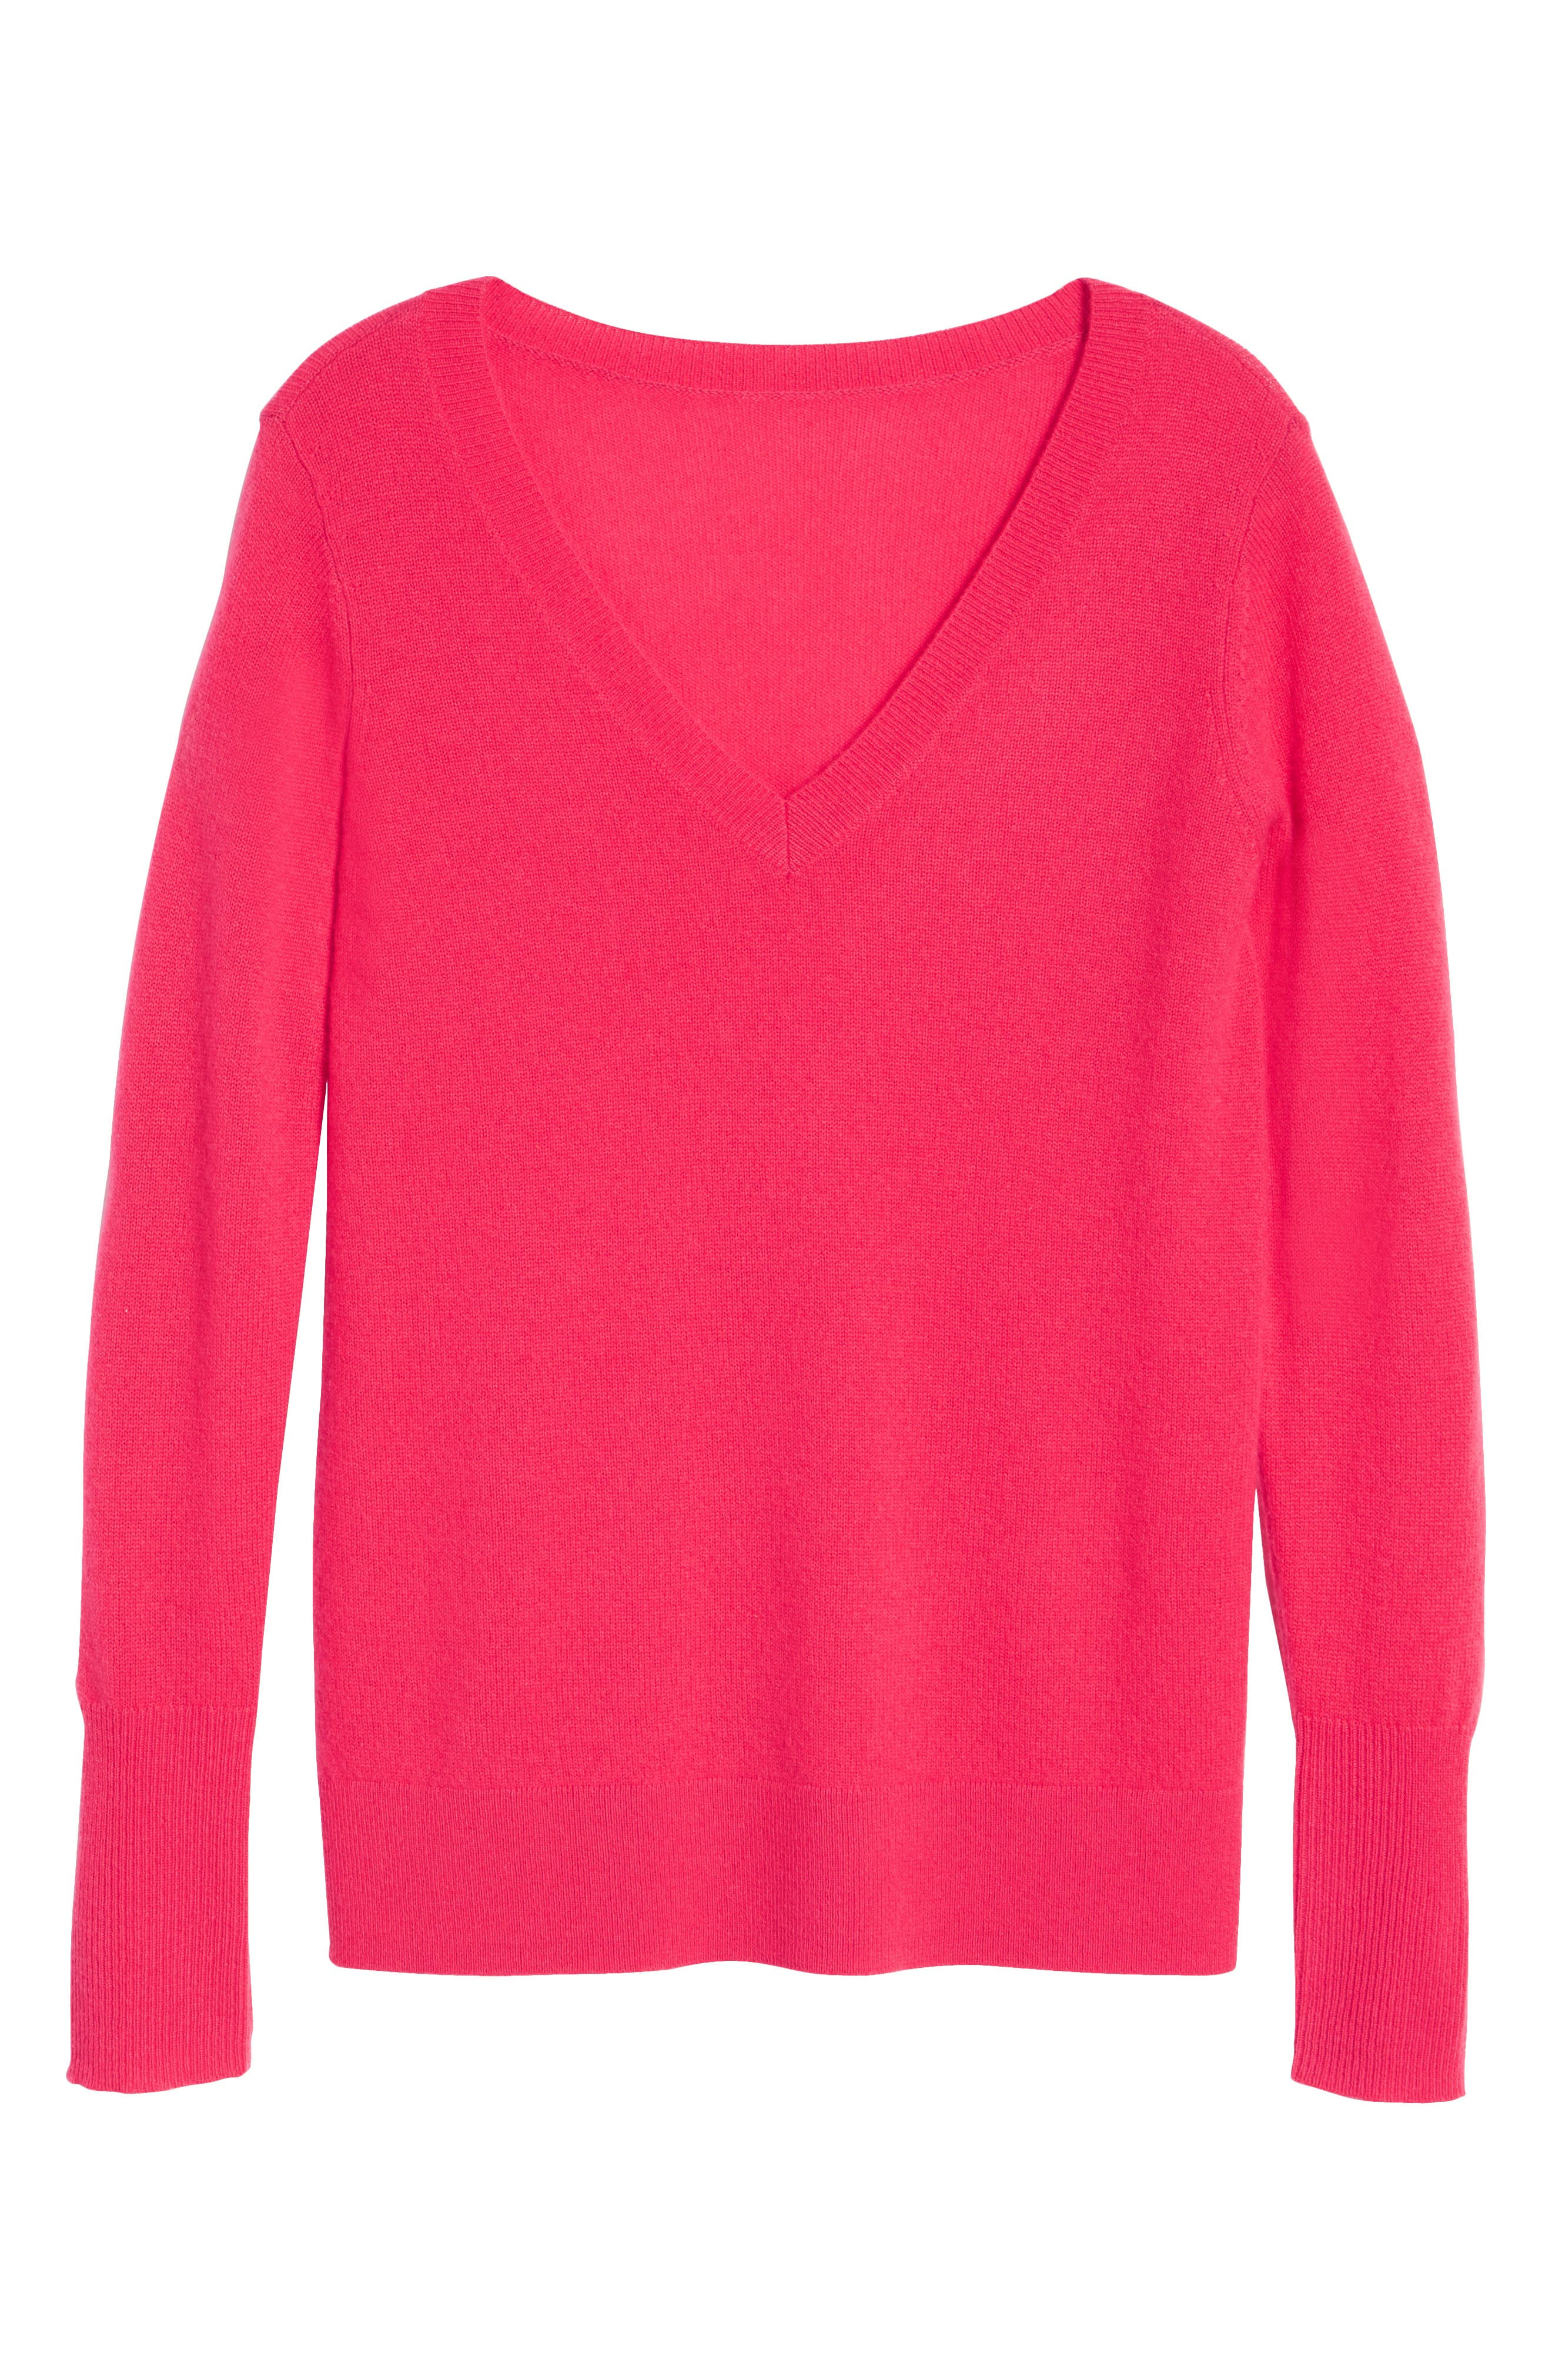 V-Neck Cashmere Sweater,                             Alternate thumbnail 94, color,